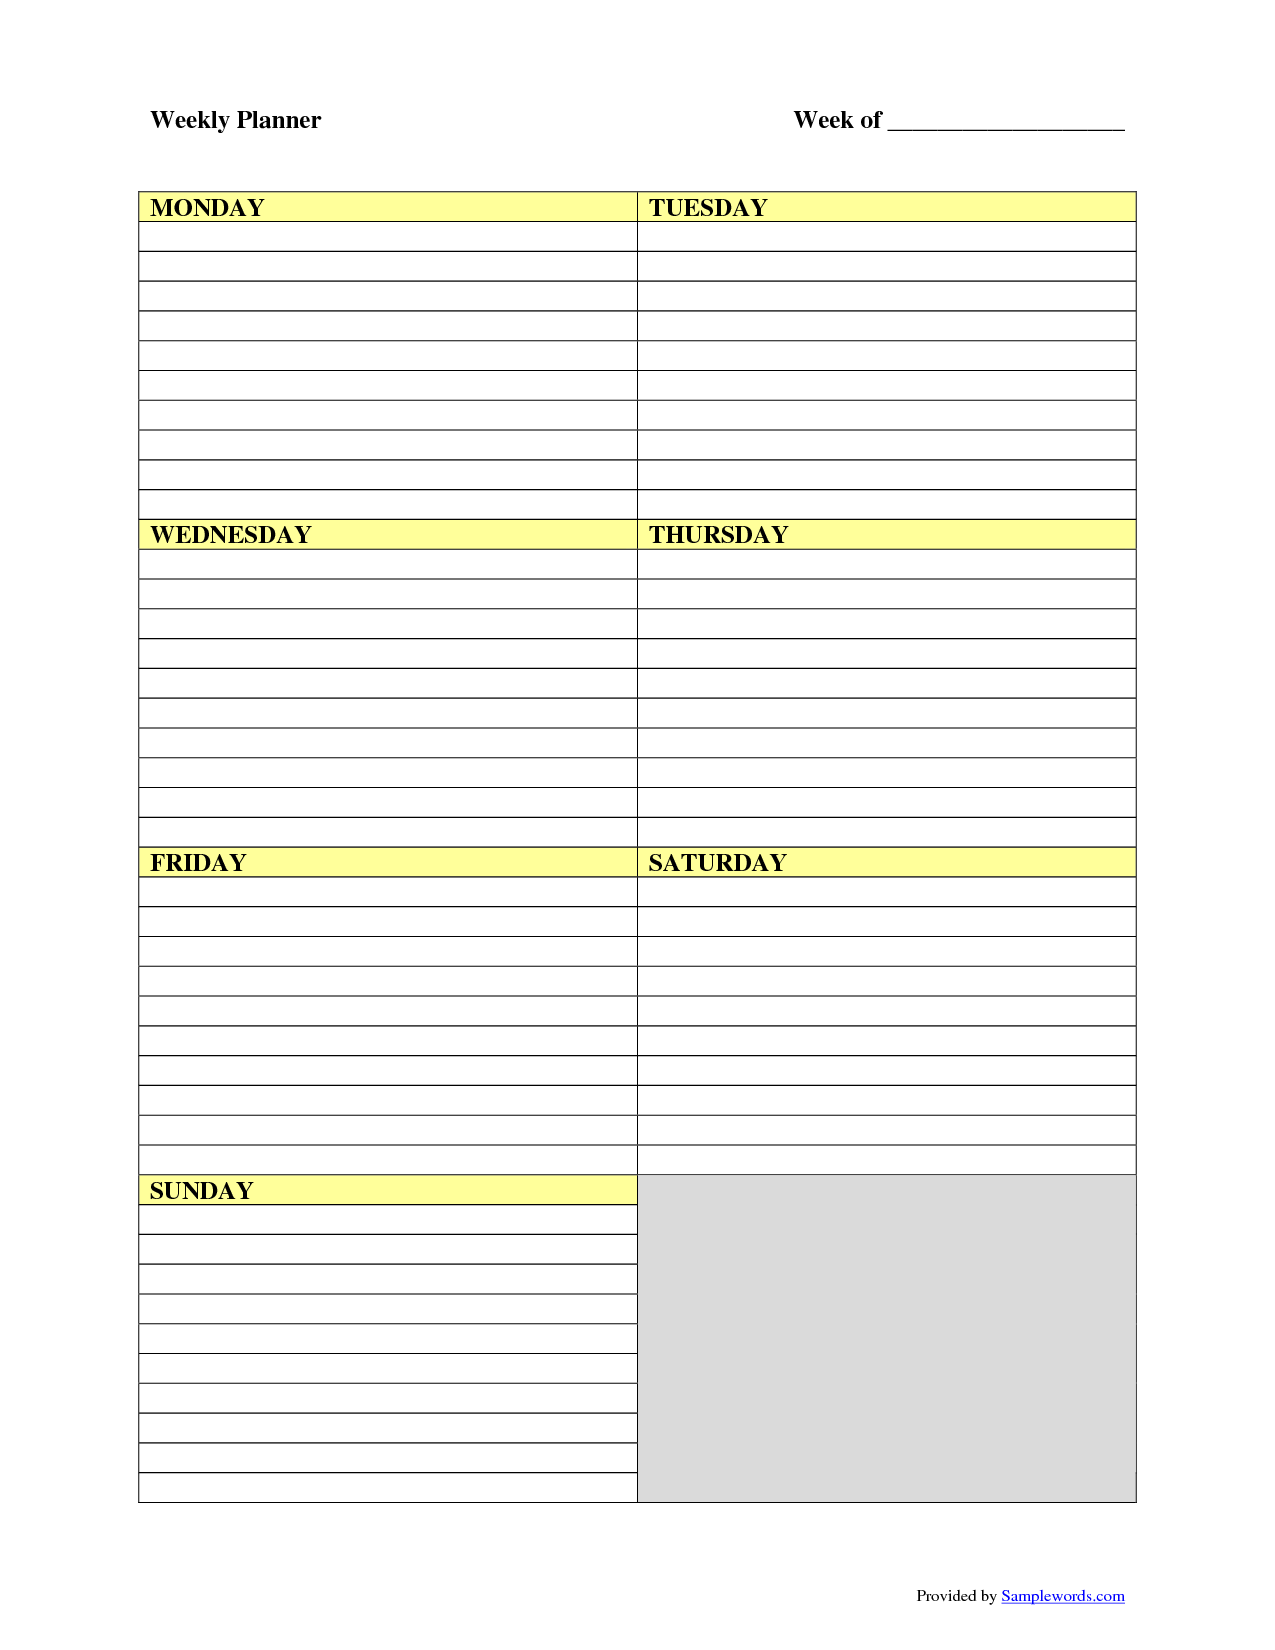 Weekly Printable Images Gallery Category Page 2